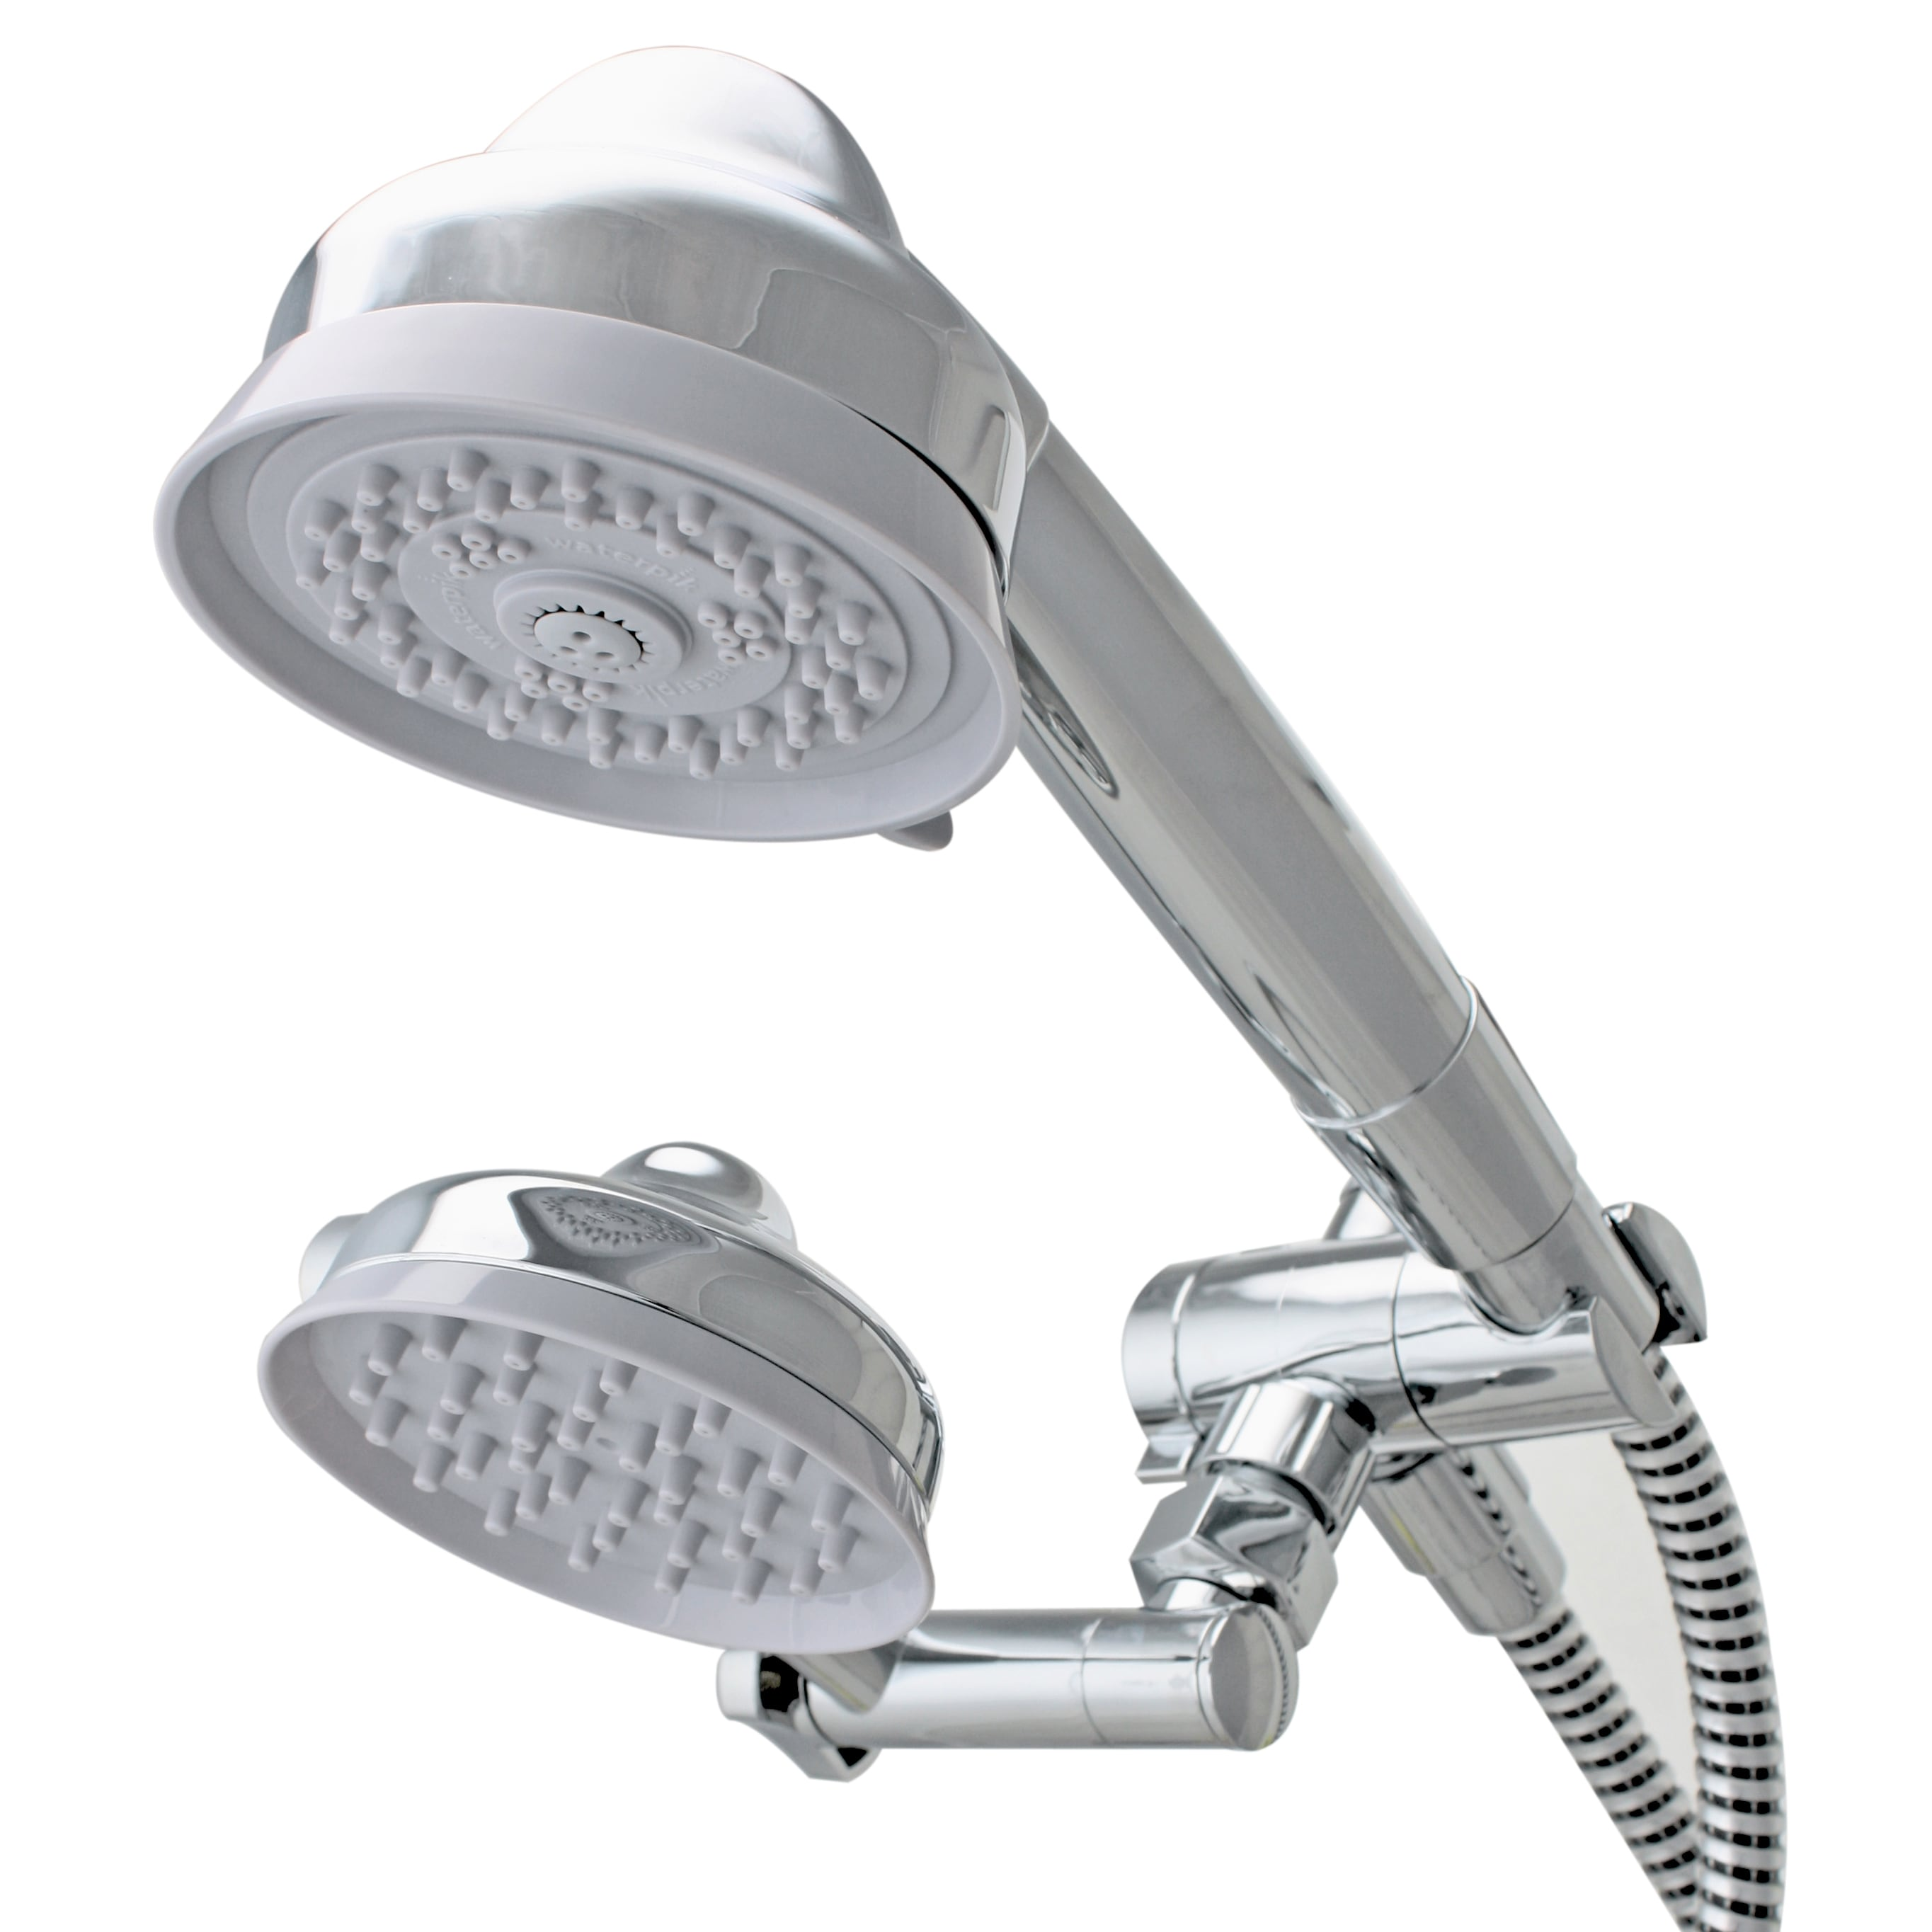 Waterpik EcoFlow Combination Hand Shower With High Low Adjustable Rainshower